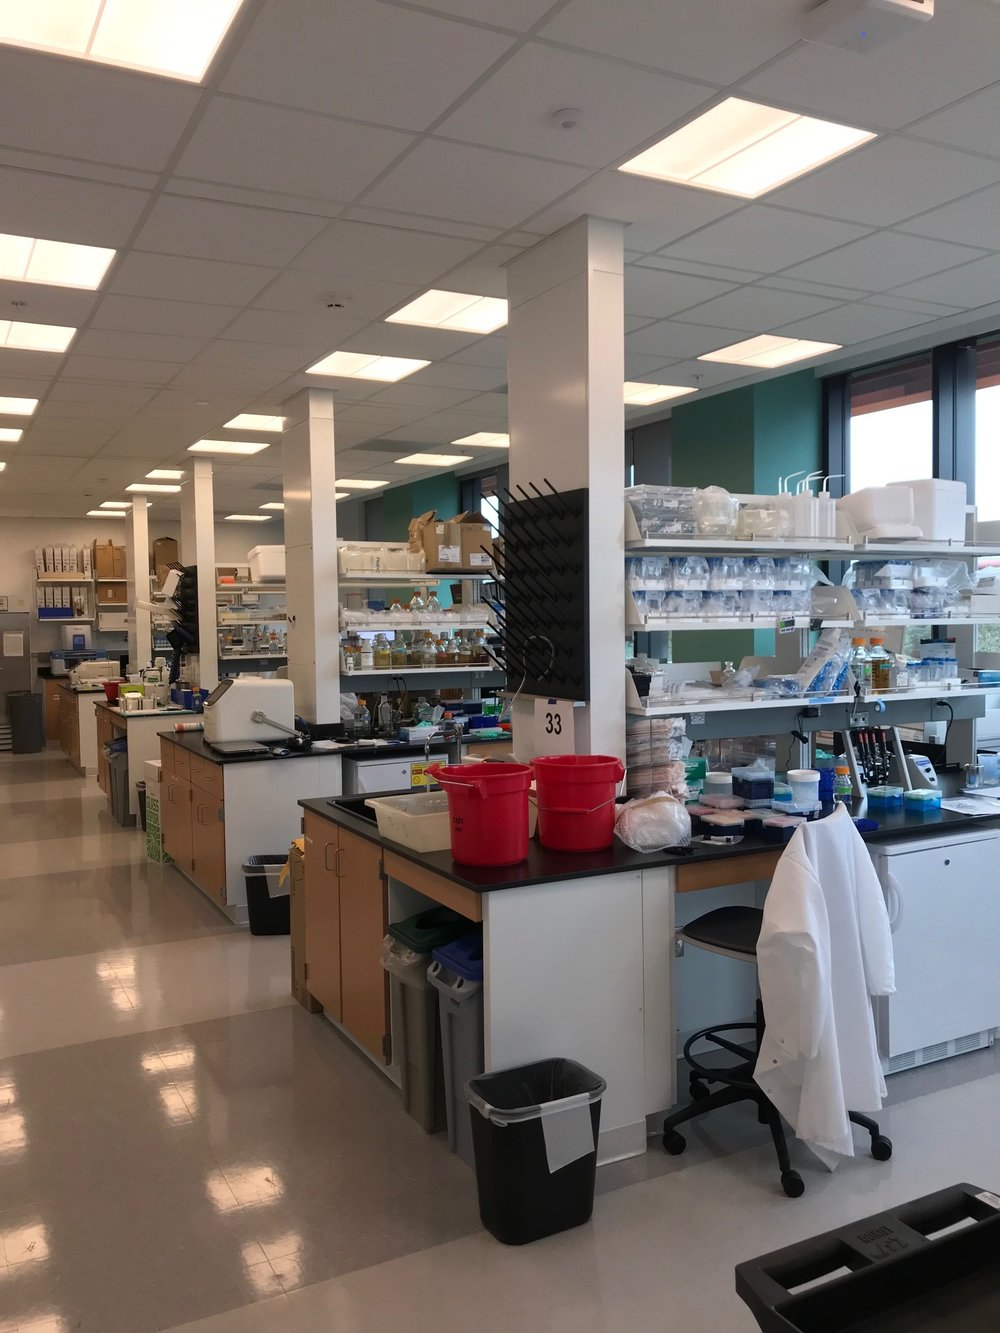 All moved in! The new lab in the Bass Biology Building is awesome. - 20 Nov 18